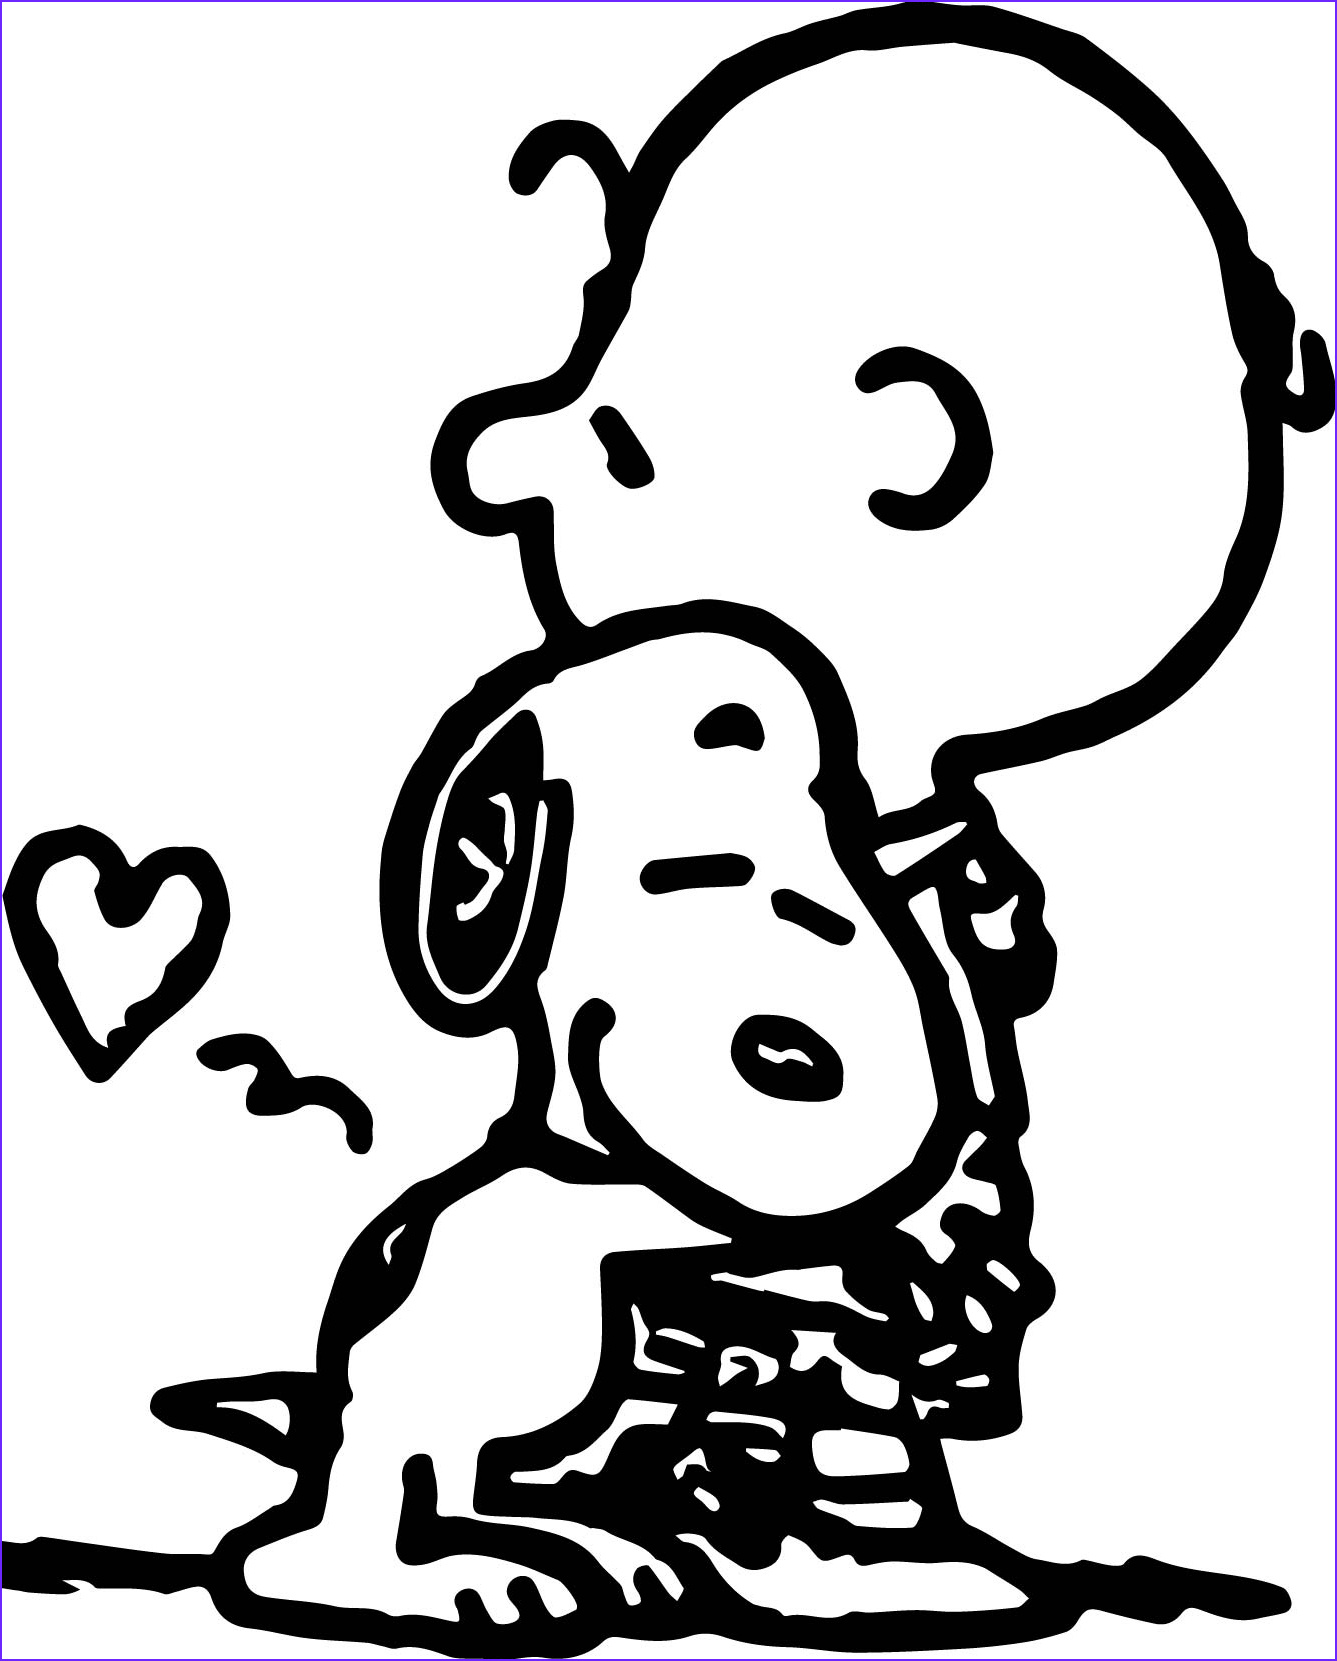 charlie brown snoopy coloring page